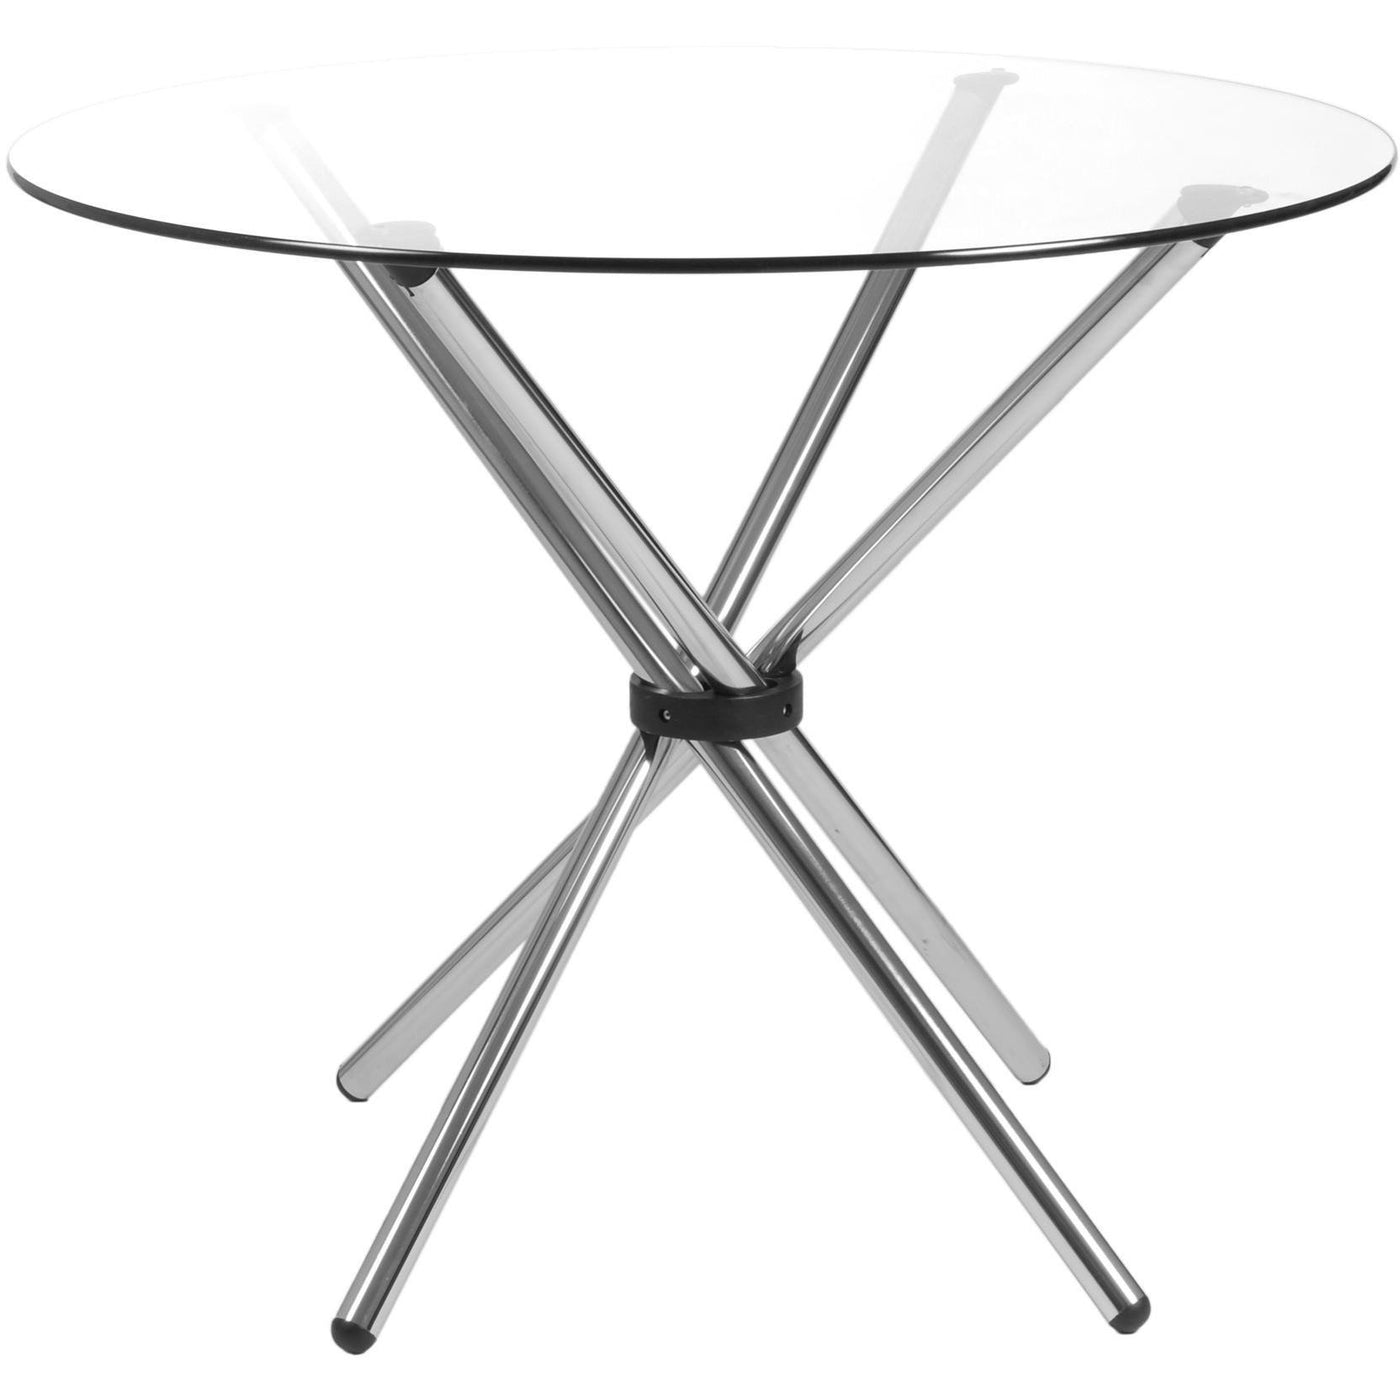 42 inch dining table modern kitchen euro style hydra 42inch dining table shop online hydra 42 inch round dining table for restaurant all